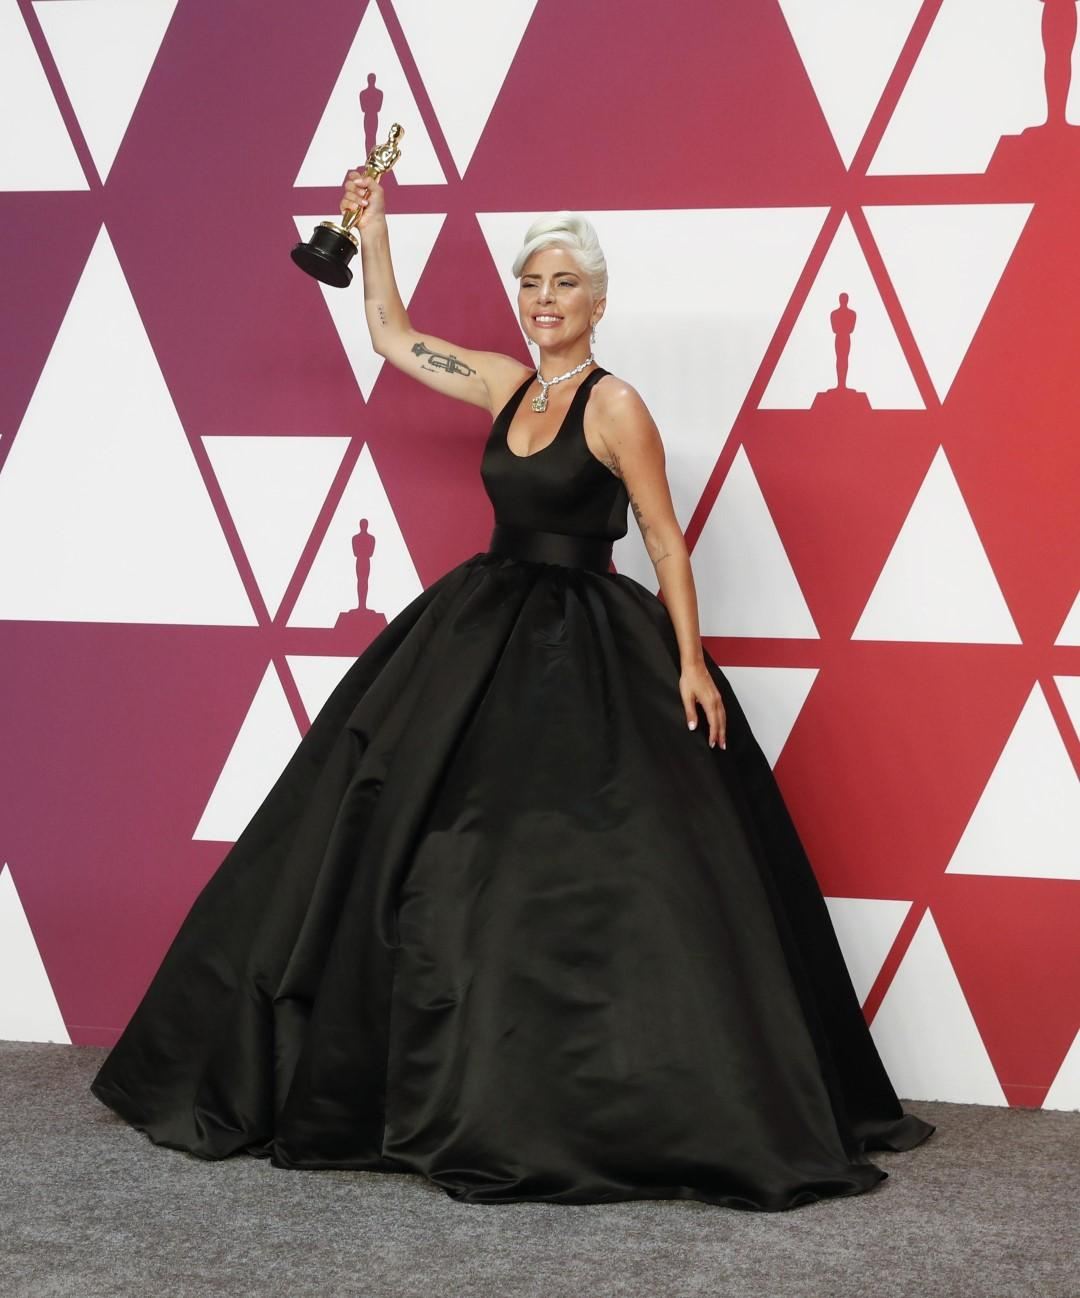 Oscar 2019, tutti i look: lo smoking con super gonna spiazza e vince